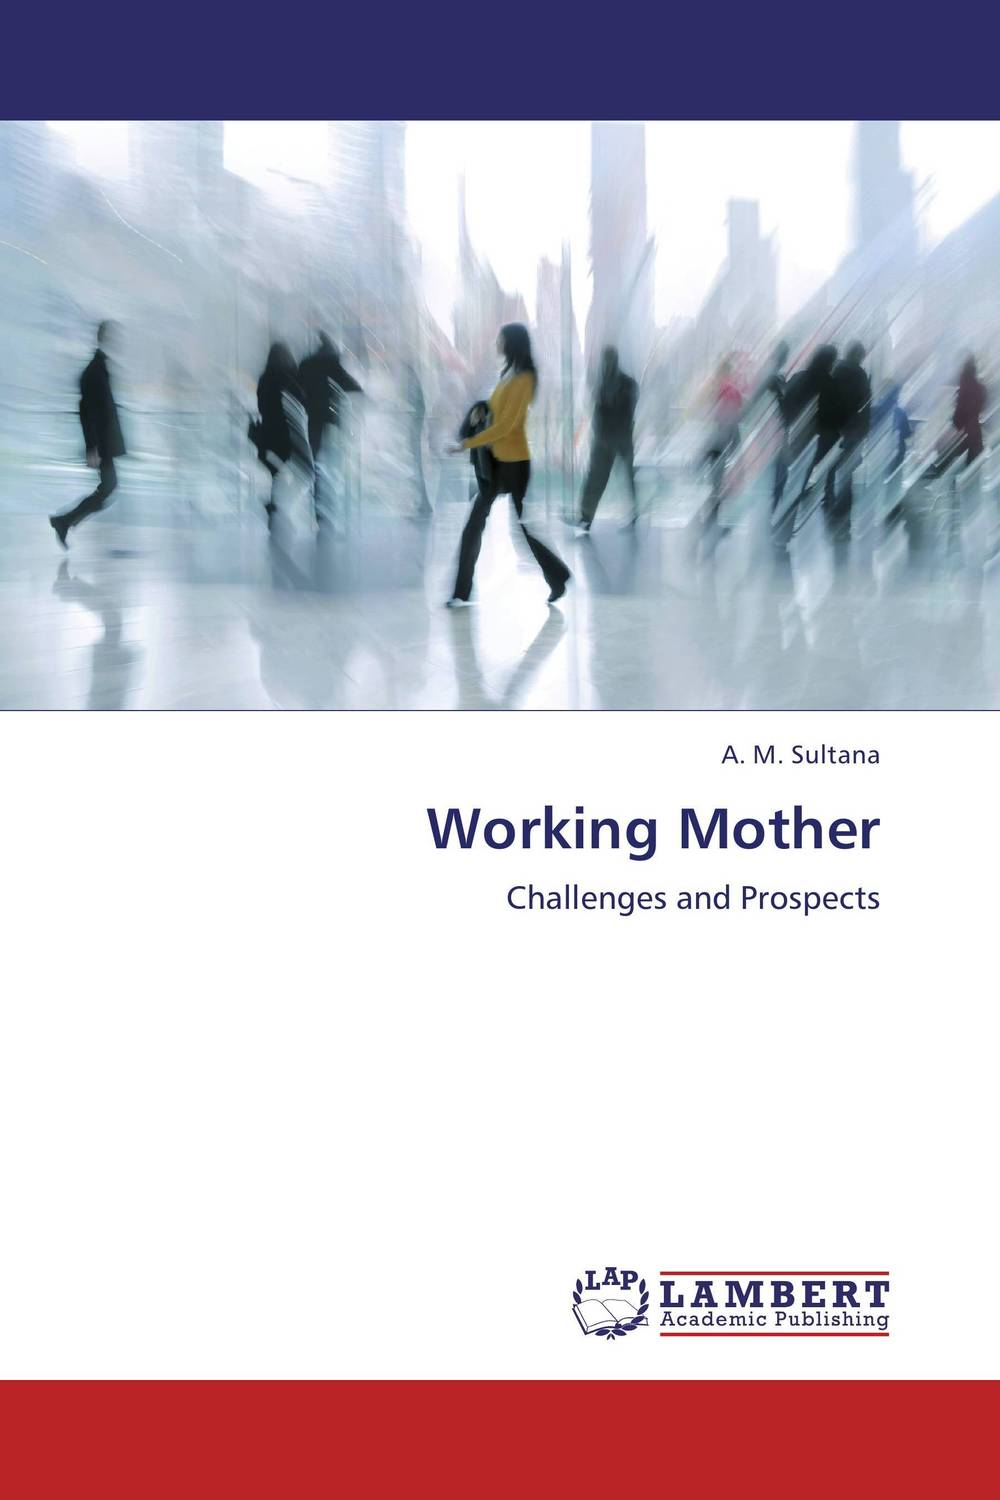 Working Mother not working